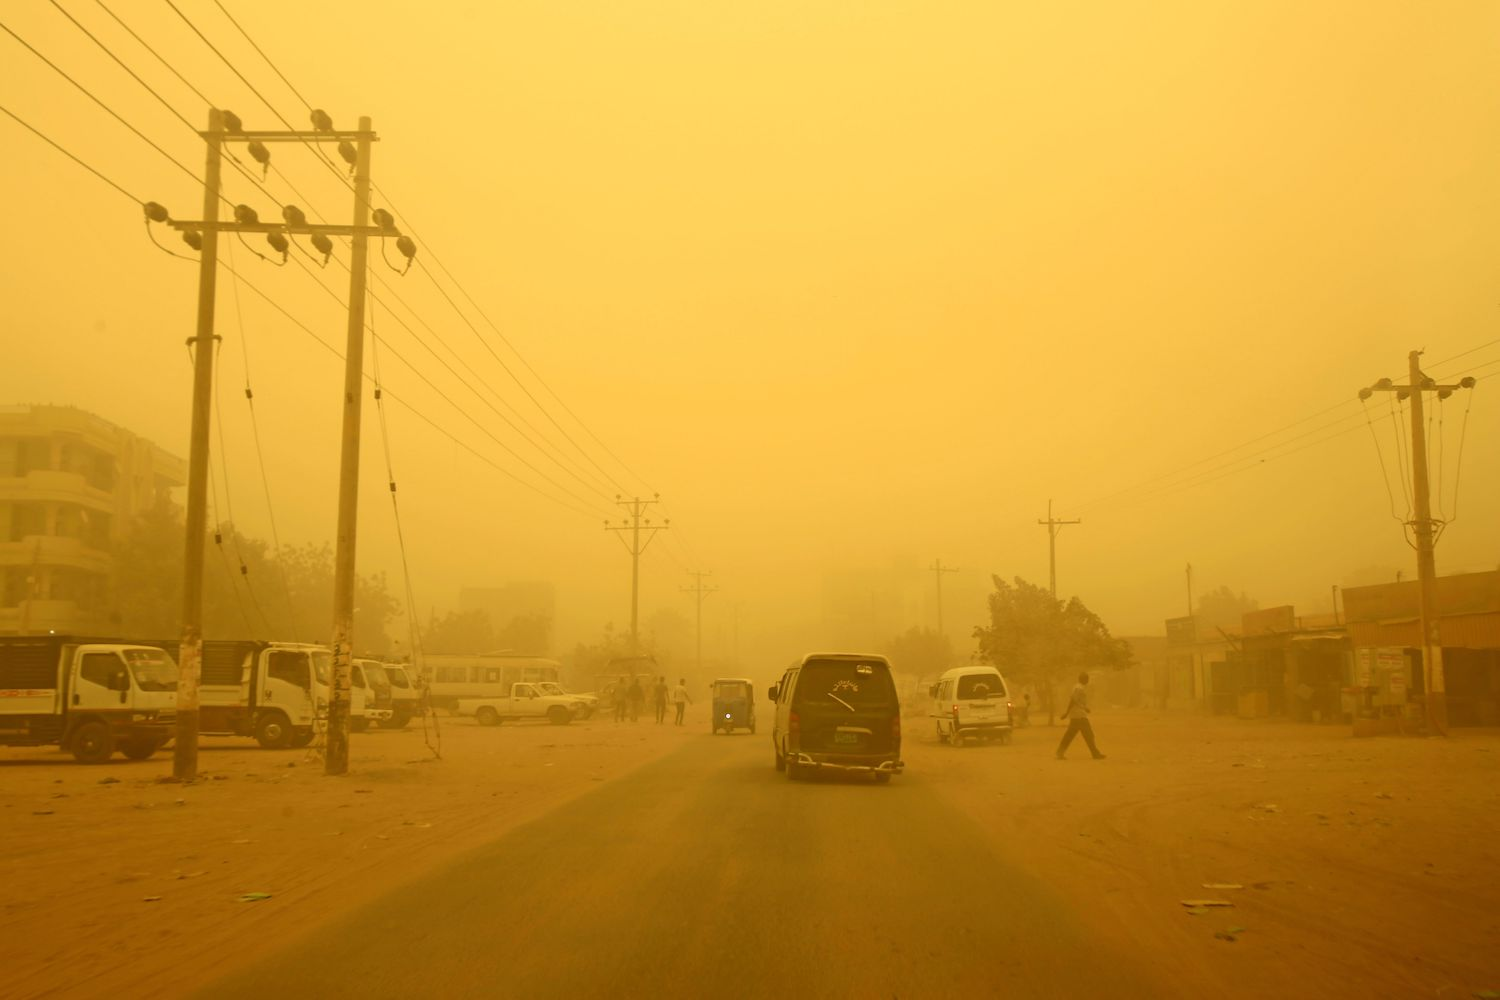 This picture taken on March 29, 2018, shows the dust storm in Khartoum A thick sandstorm engulfed the Sudanese capital on Thursday, forcing authorities to cancel flights and shut schools in Khartoum and other nearby towns. / AFP PHOTO / ASHRAF SHAZLY        (Photo credit should read ASHRAF SHAZLY/AFP/Getty Images)